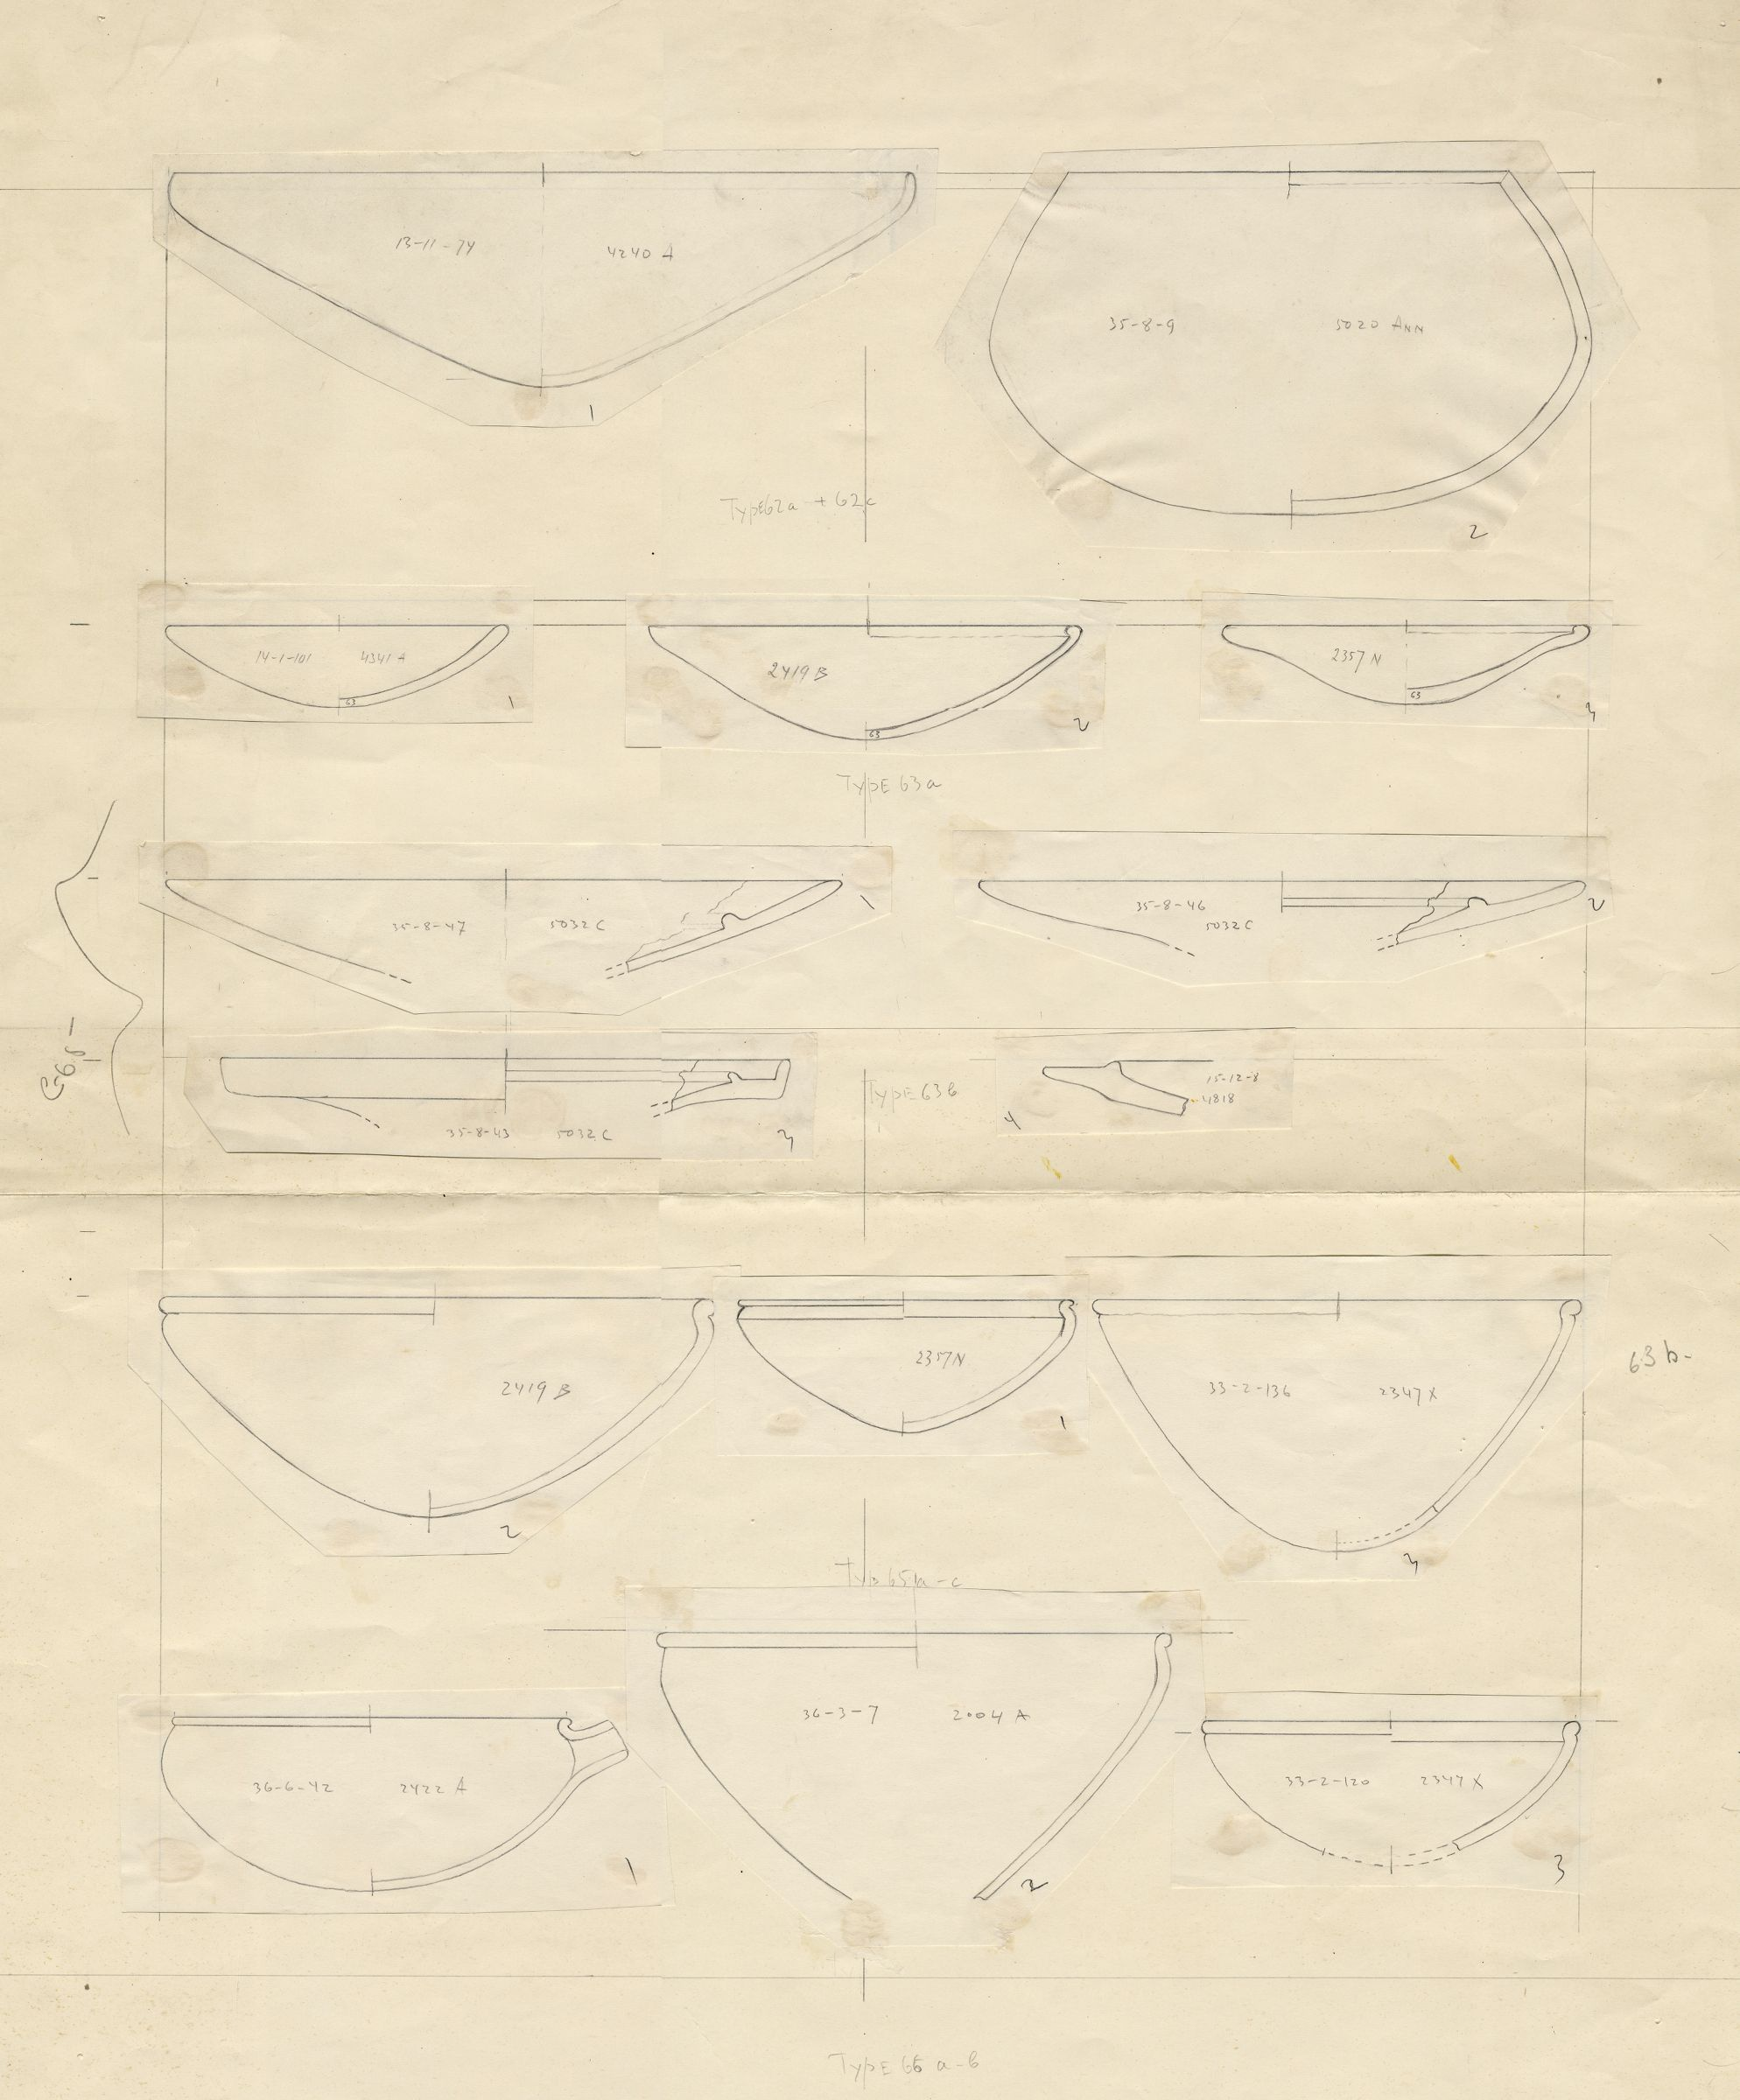 Drawings: Pottery bowls from G 2004, G 2419, G 2422, G 4240, G 4341, G 4818, G 5020-Annex, G 5032, G 5561, G 5562